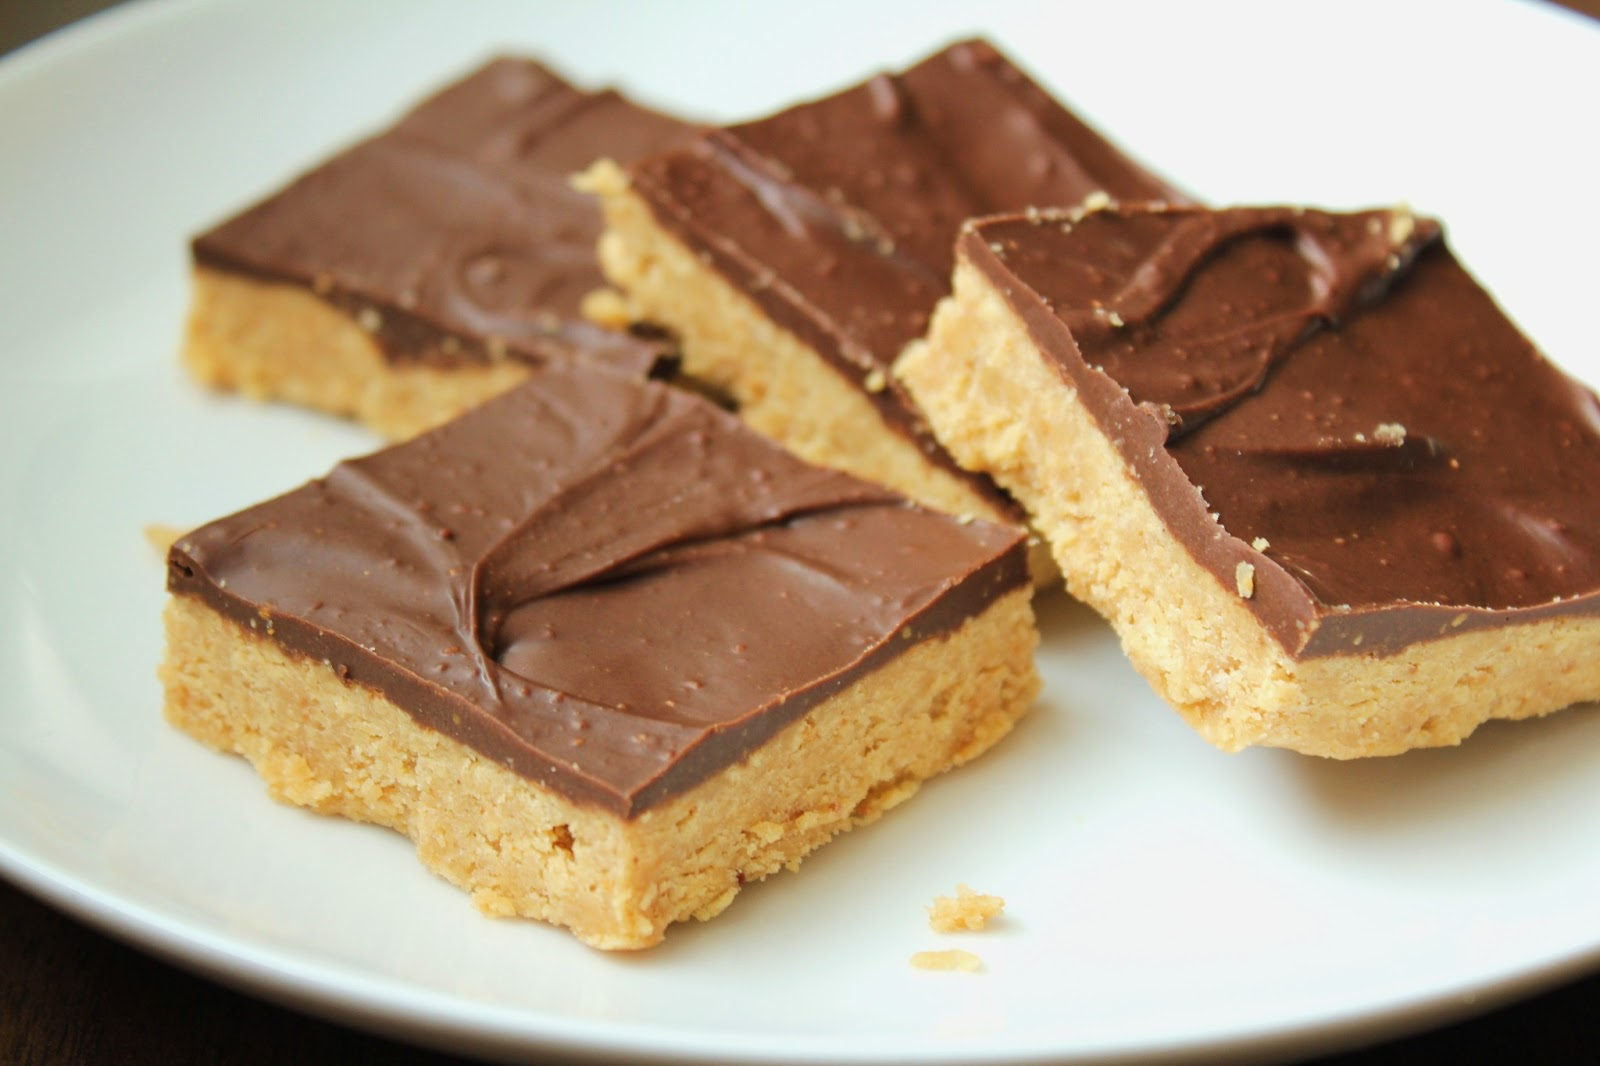 ... as it Looks: Low-Fructose Chocolate Peanut Butter Bars (Gluten-Free